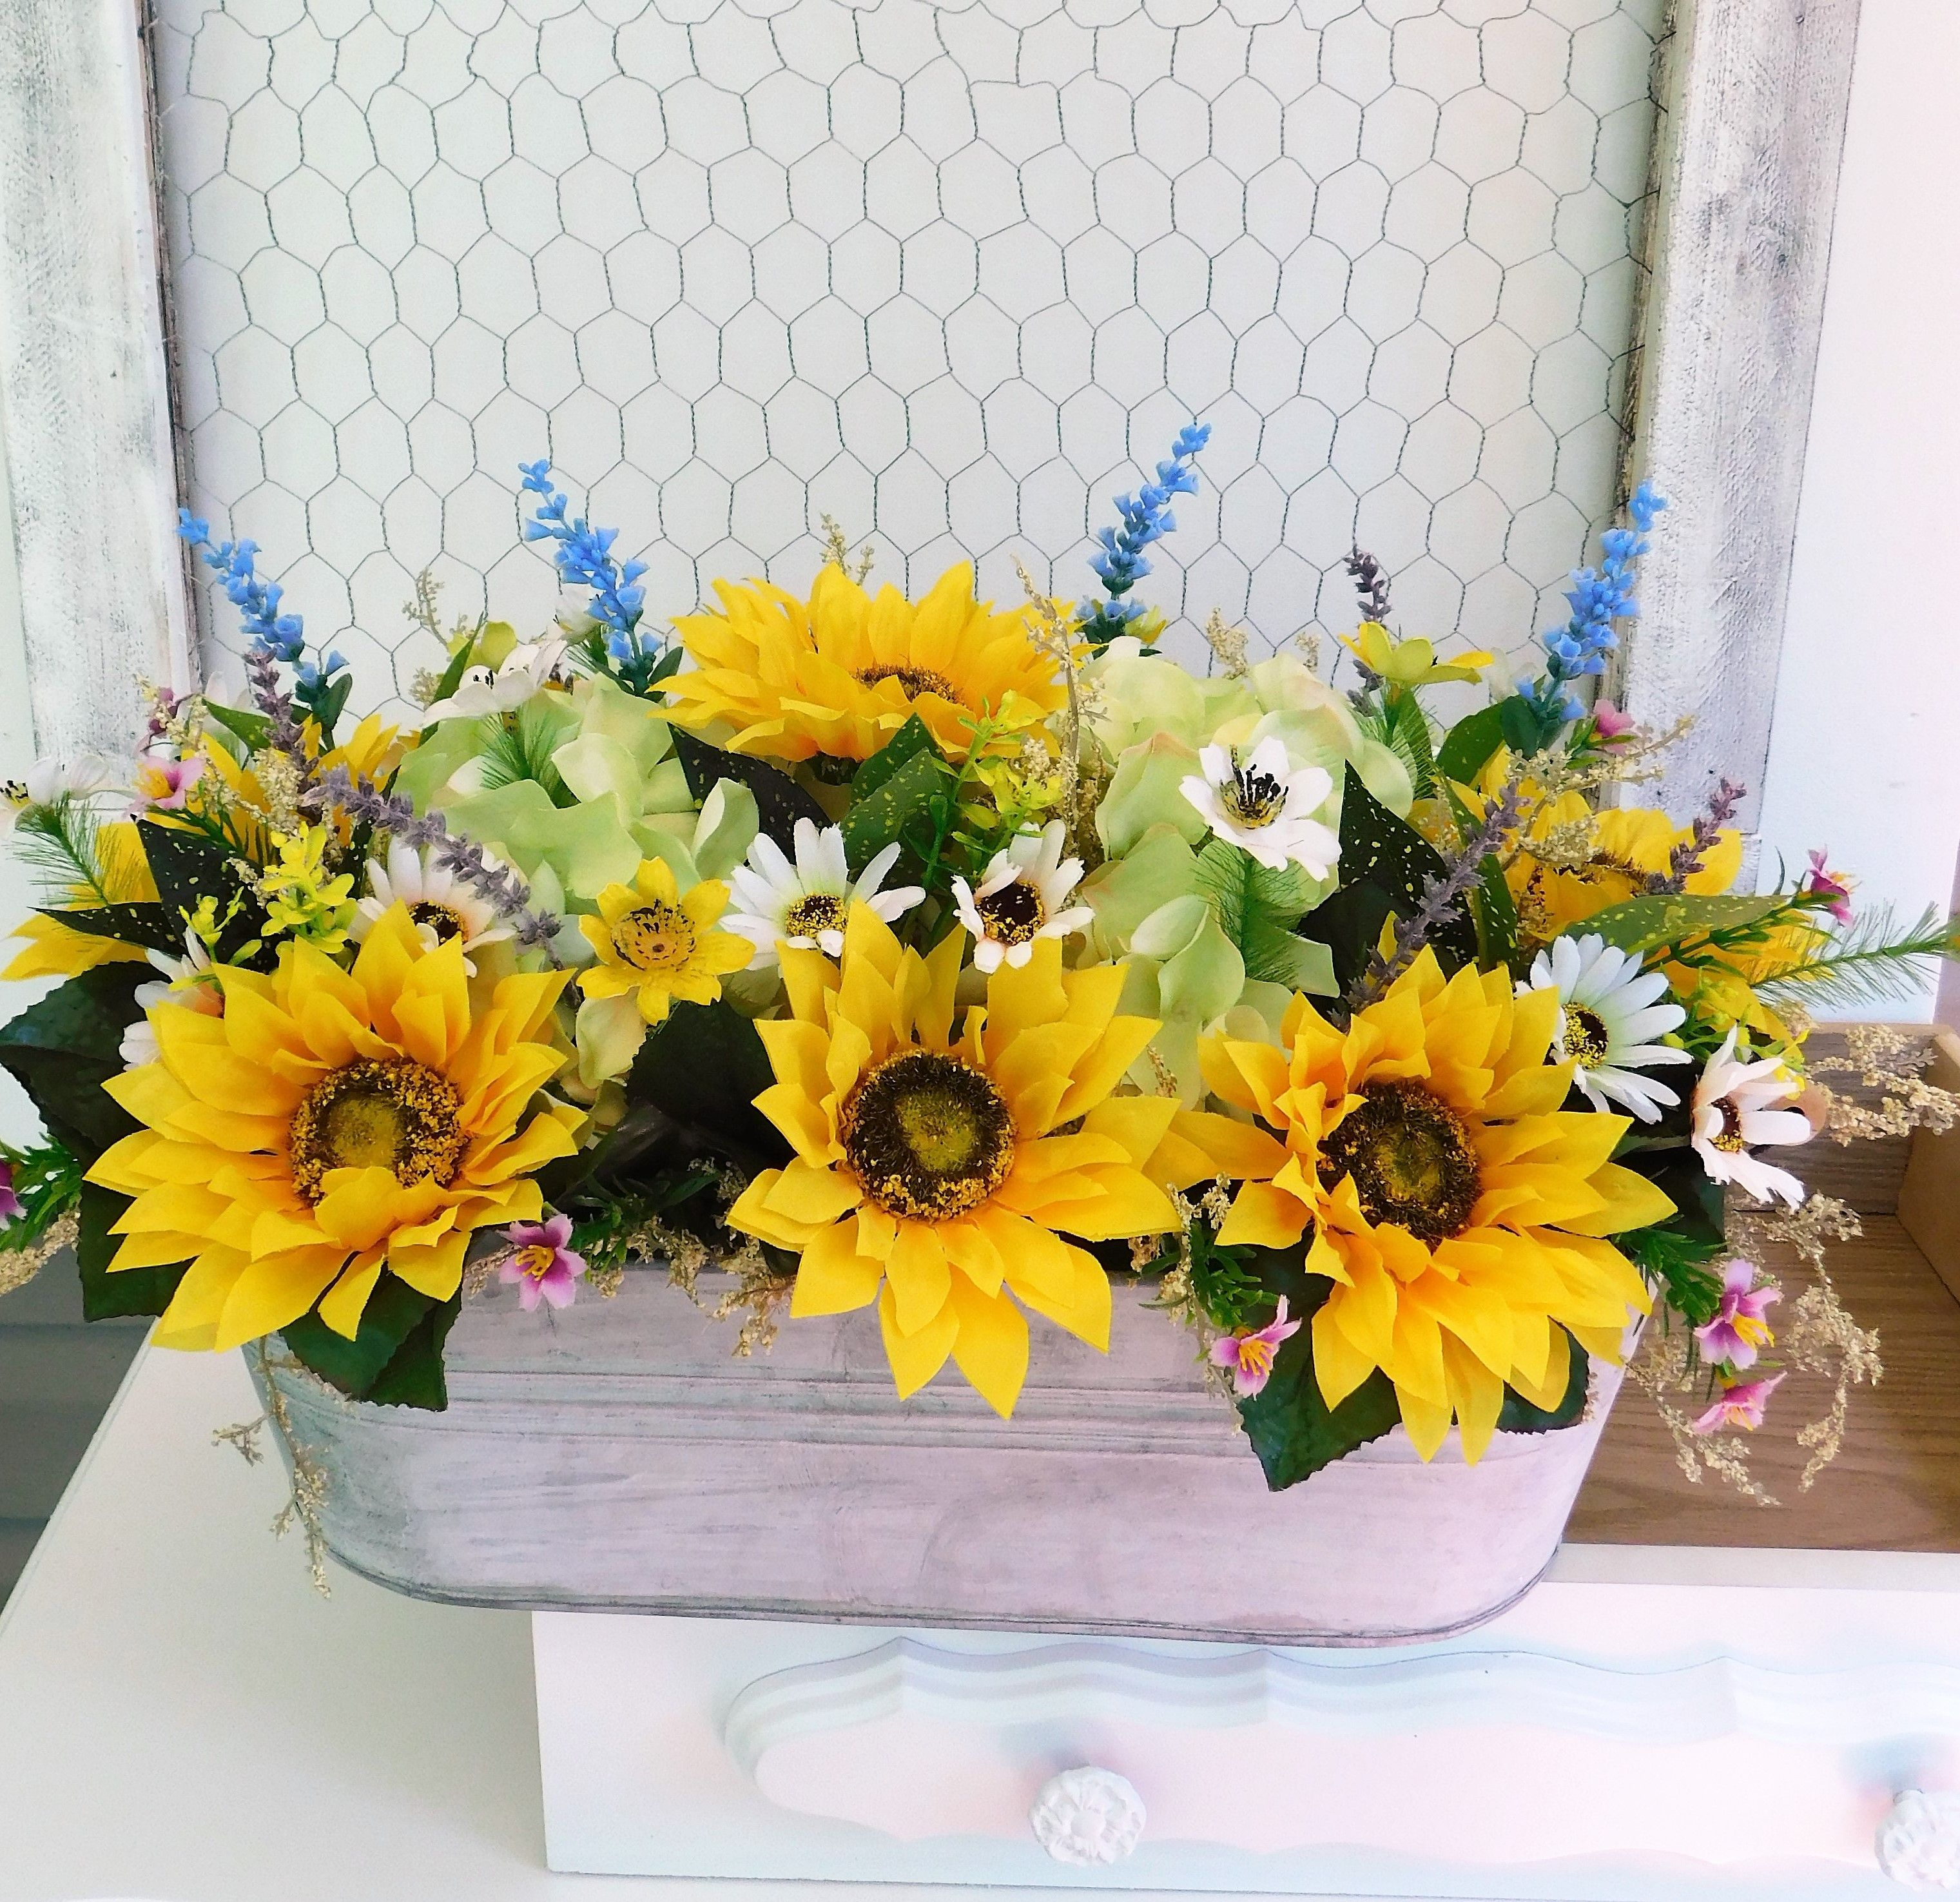 This Cheery Sunflower Arrangement Features The Following 9 Sunflowers, 2